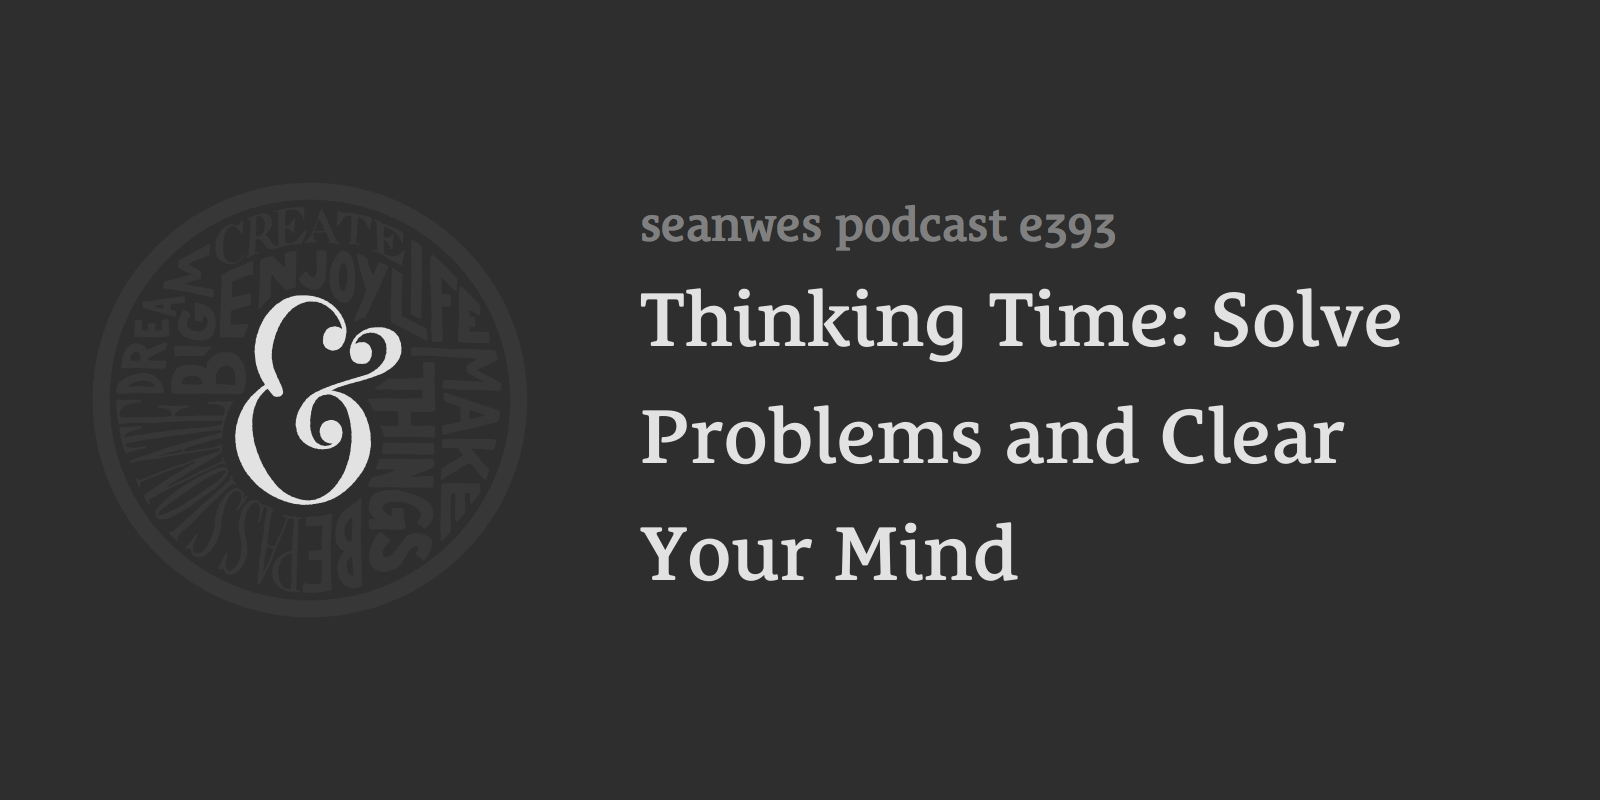 Thinking Time: Solve Problems and Clear Your Mind